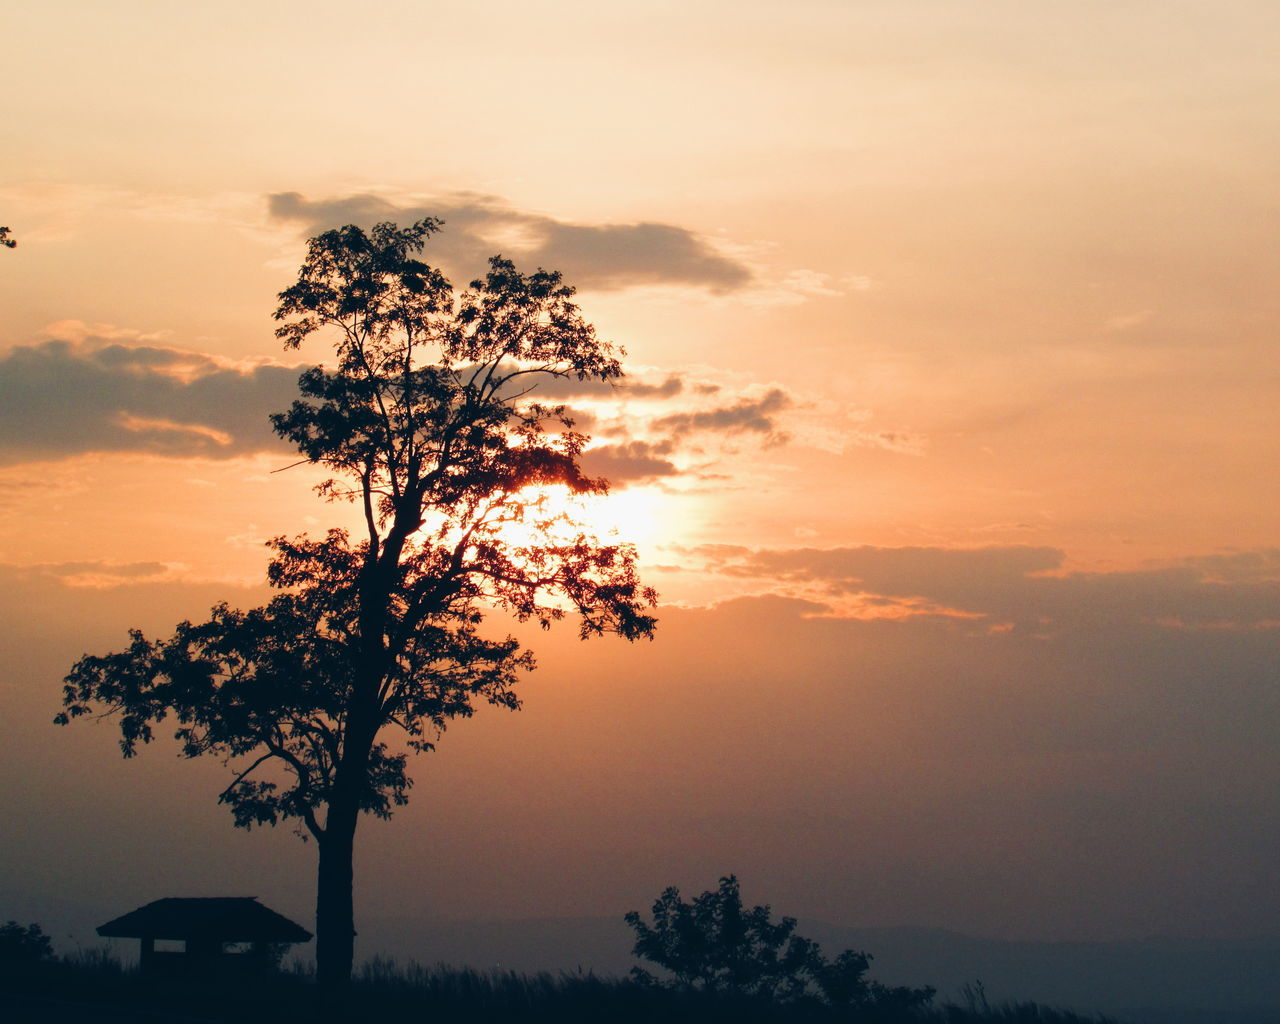 Silhouette Of Trees On Field At Sunset